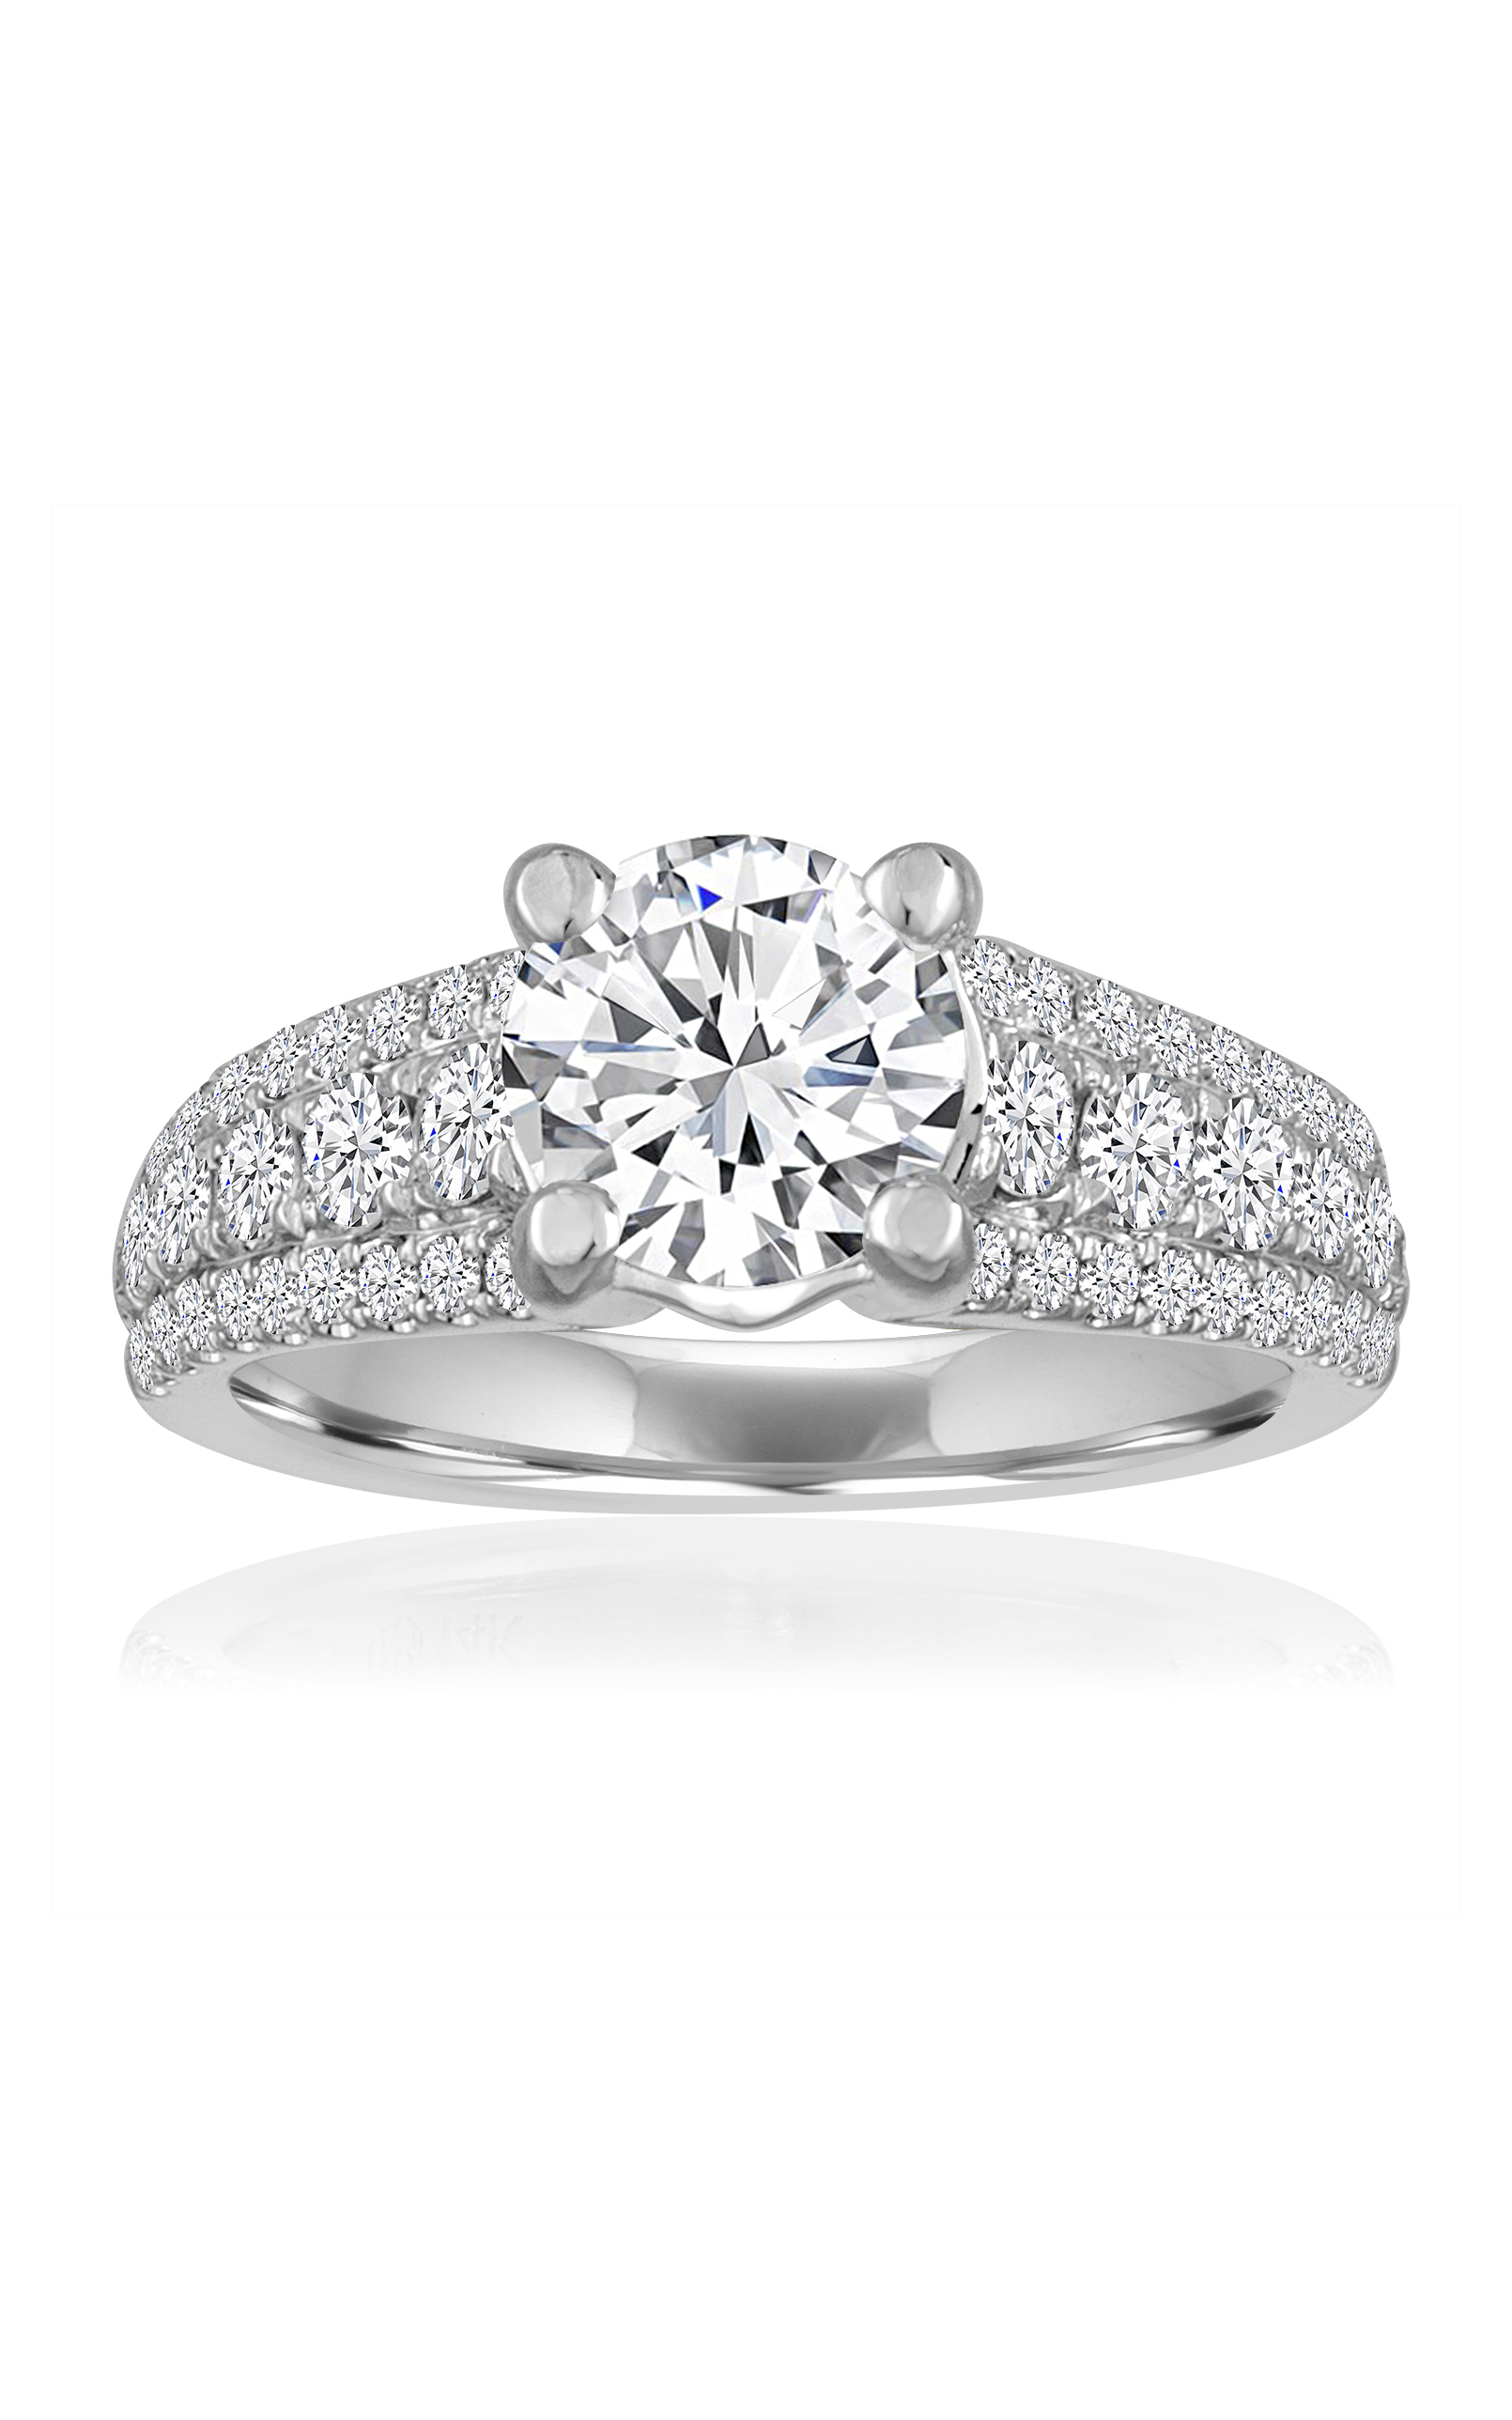 popular shop wedding engagement styles diamond pawn rings nhdazco shops promise hilltop and ring